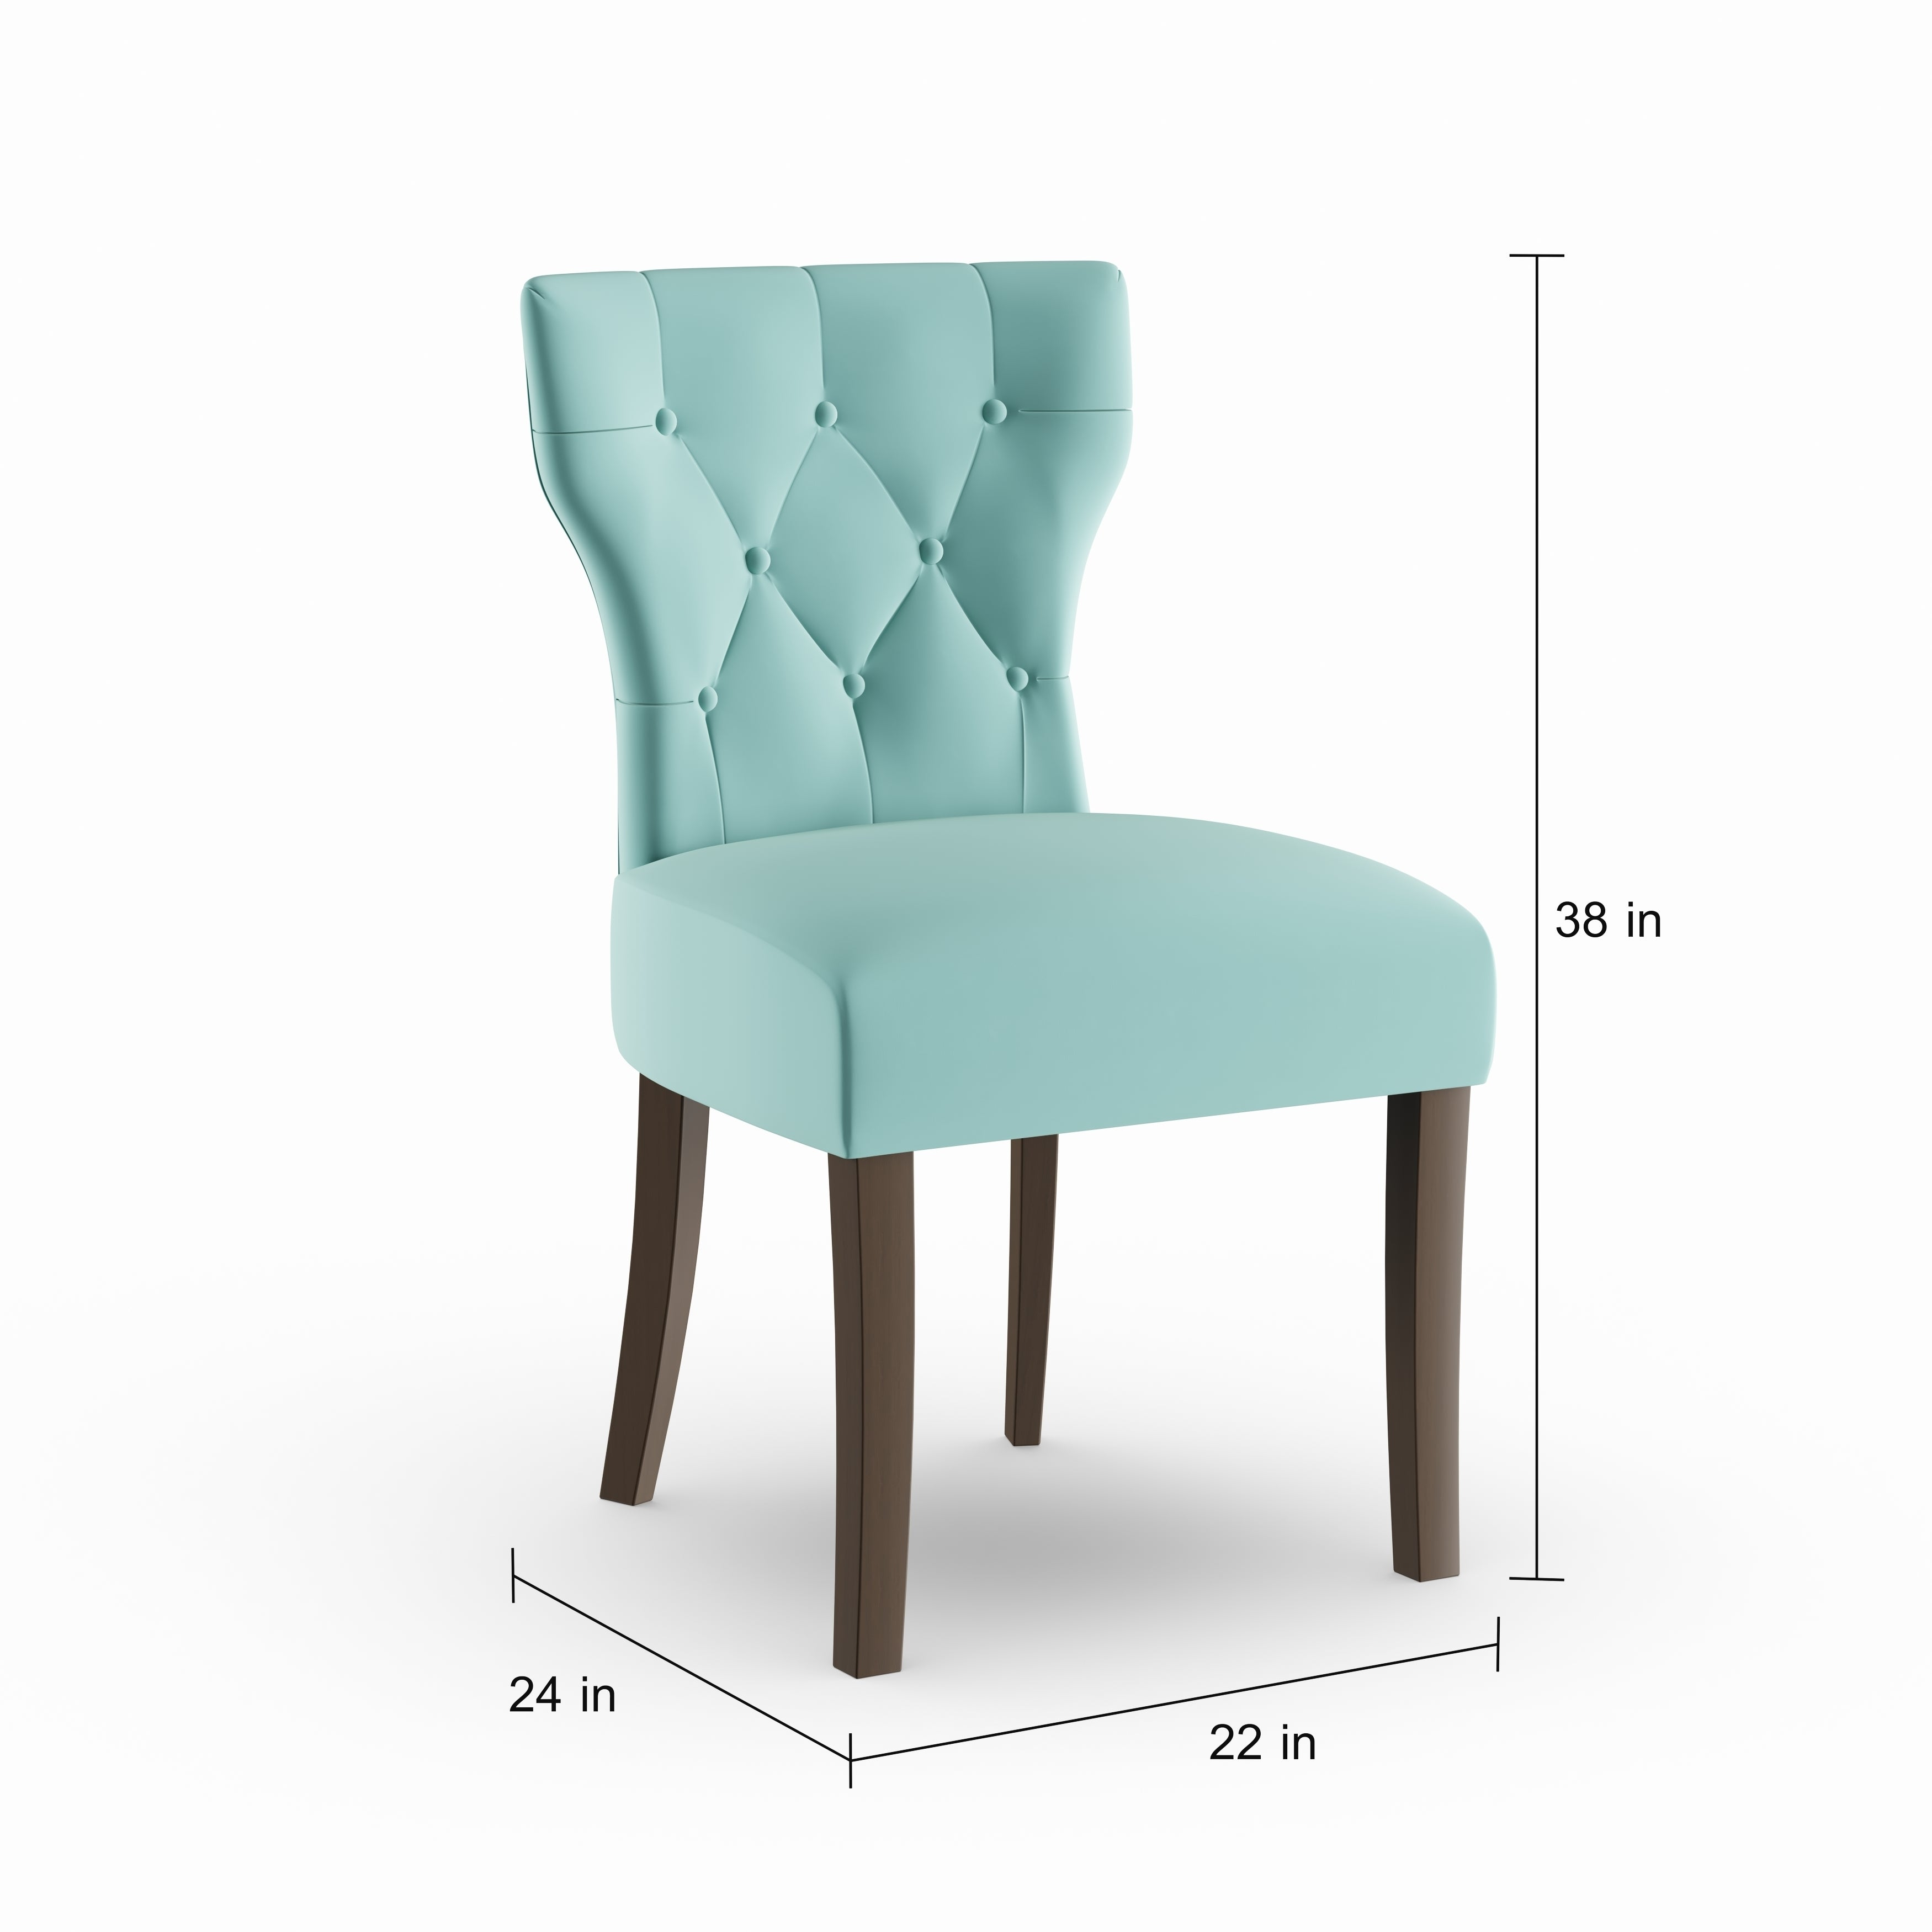 Shop Copper Grove Lagunas Deep Turquoise Blue Velvet Upholstered Armless Dining Chairs (Set of 2) - Free Shipping Today - Overstock - 20689741  sc 1 st  Overstock.com & Shop Copper Grove Lagunas Deep Turquoise Blue Velvet Upholstered ...